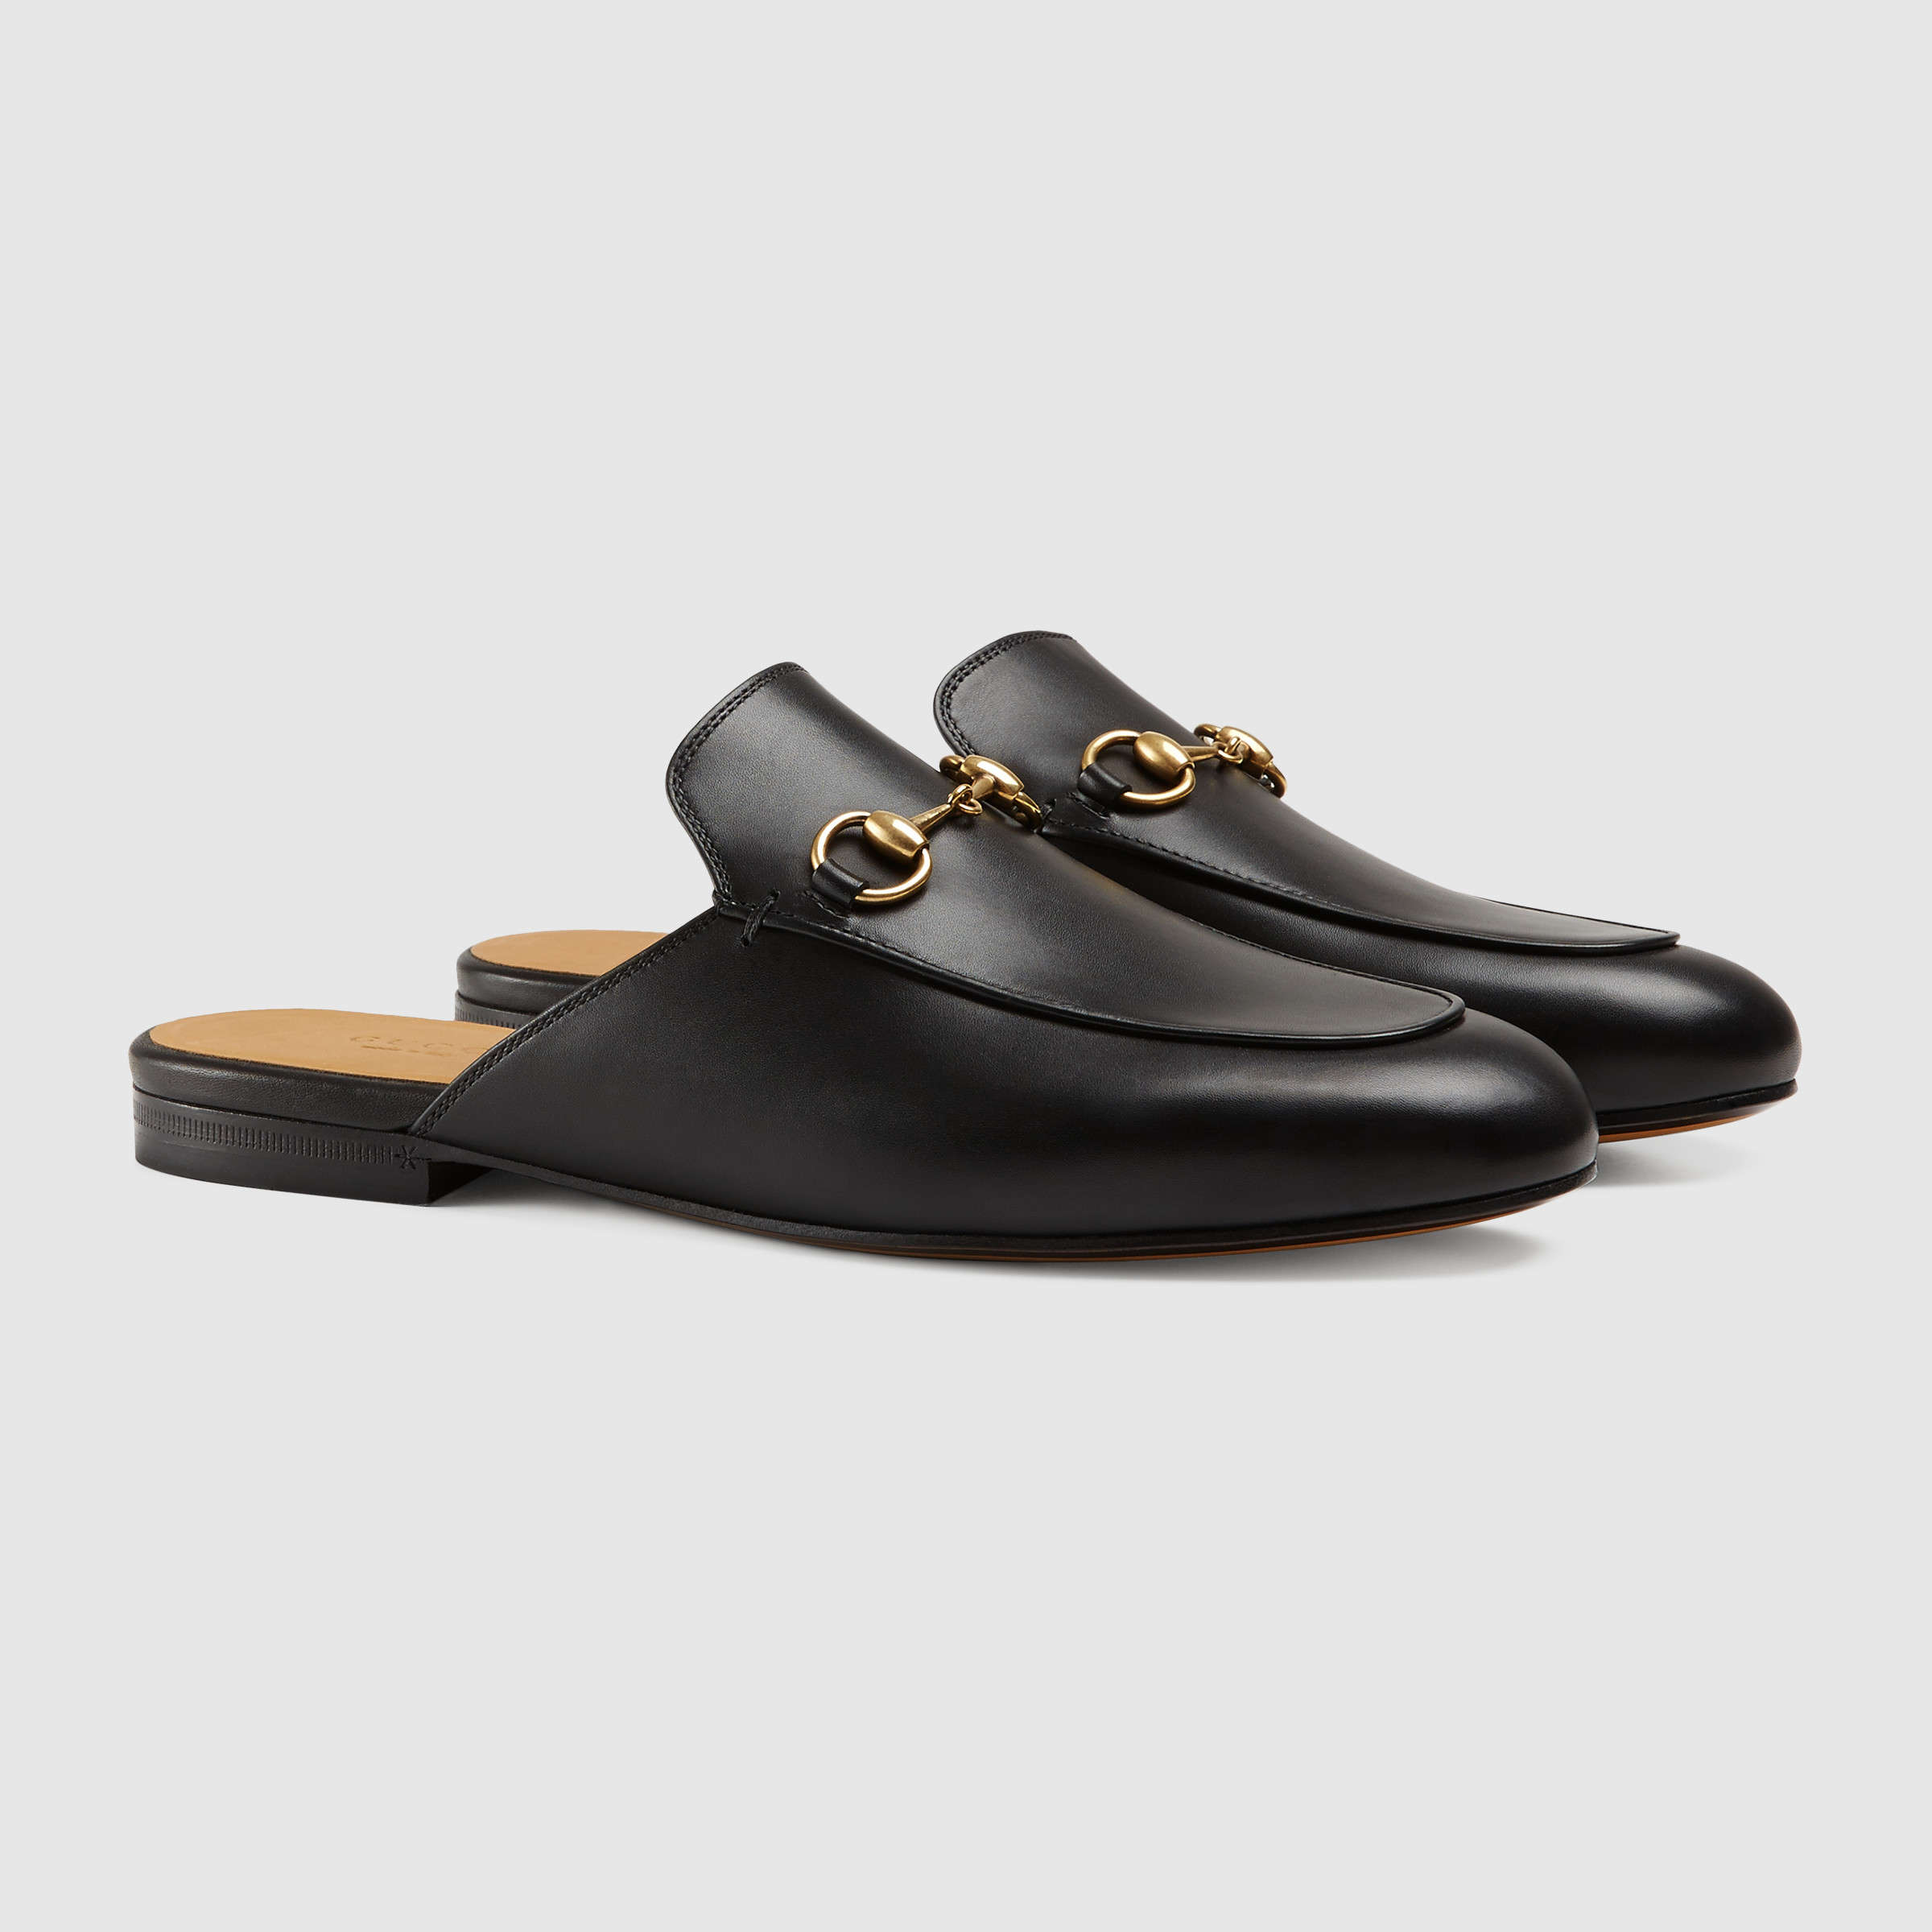 Gucci Loafers Womens Shoes